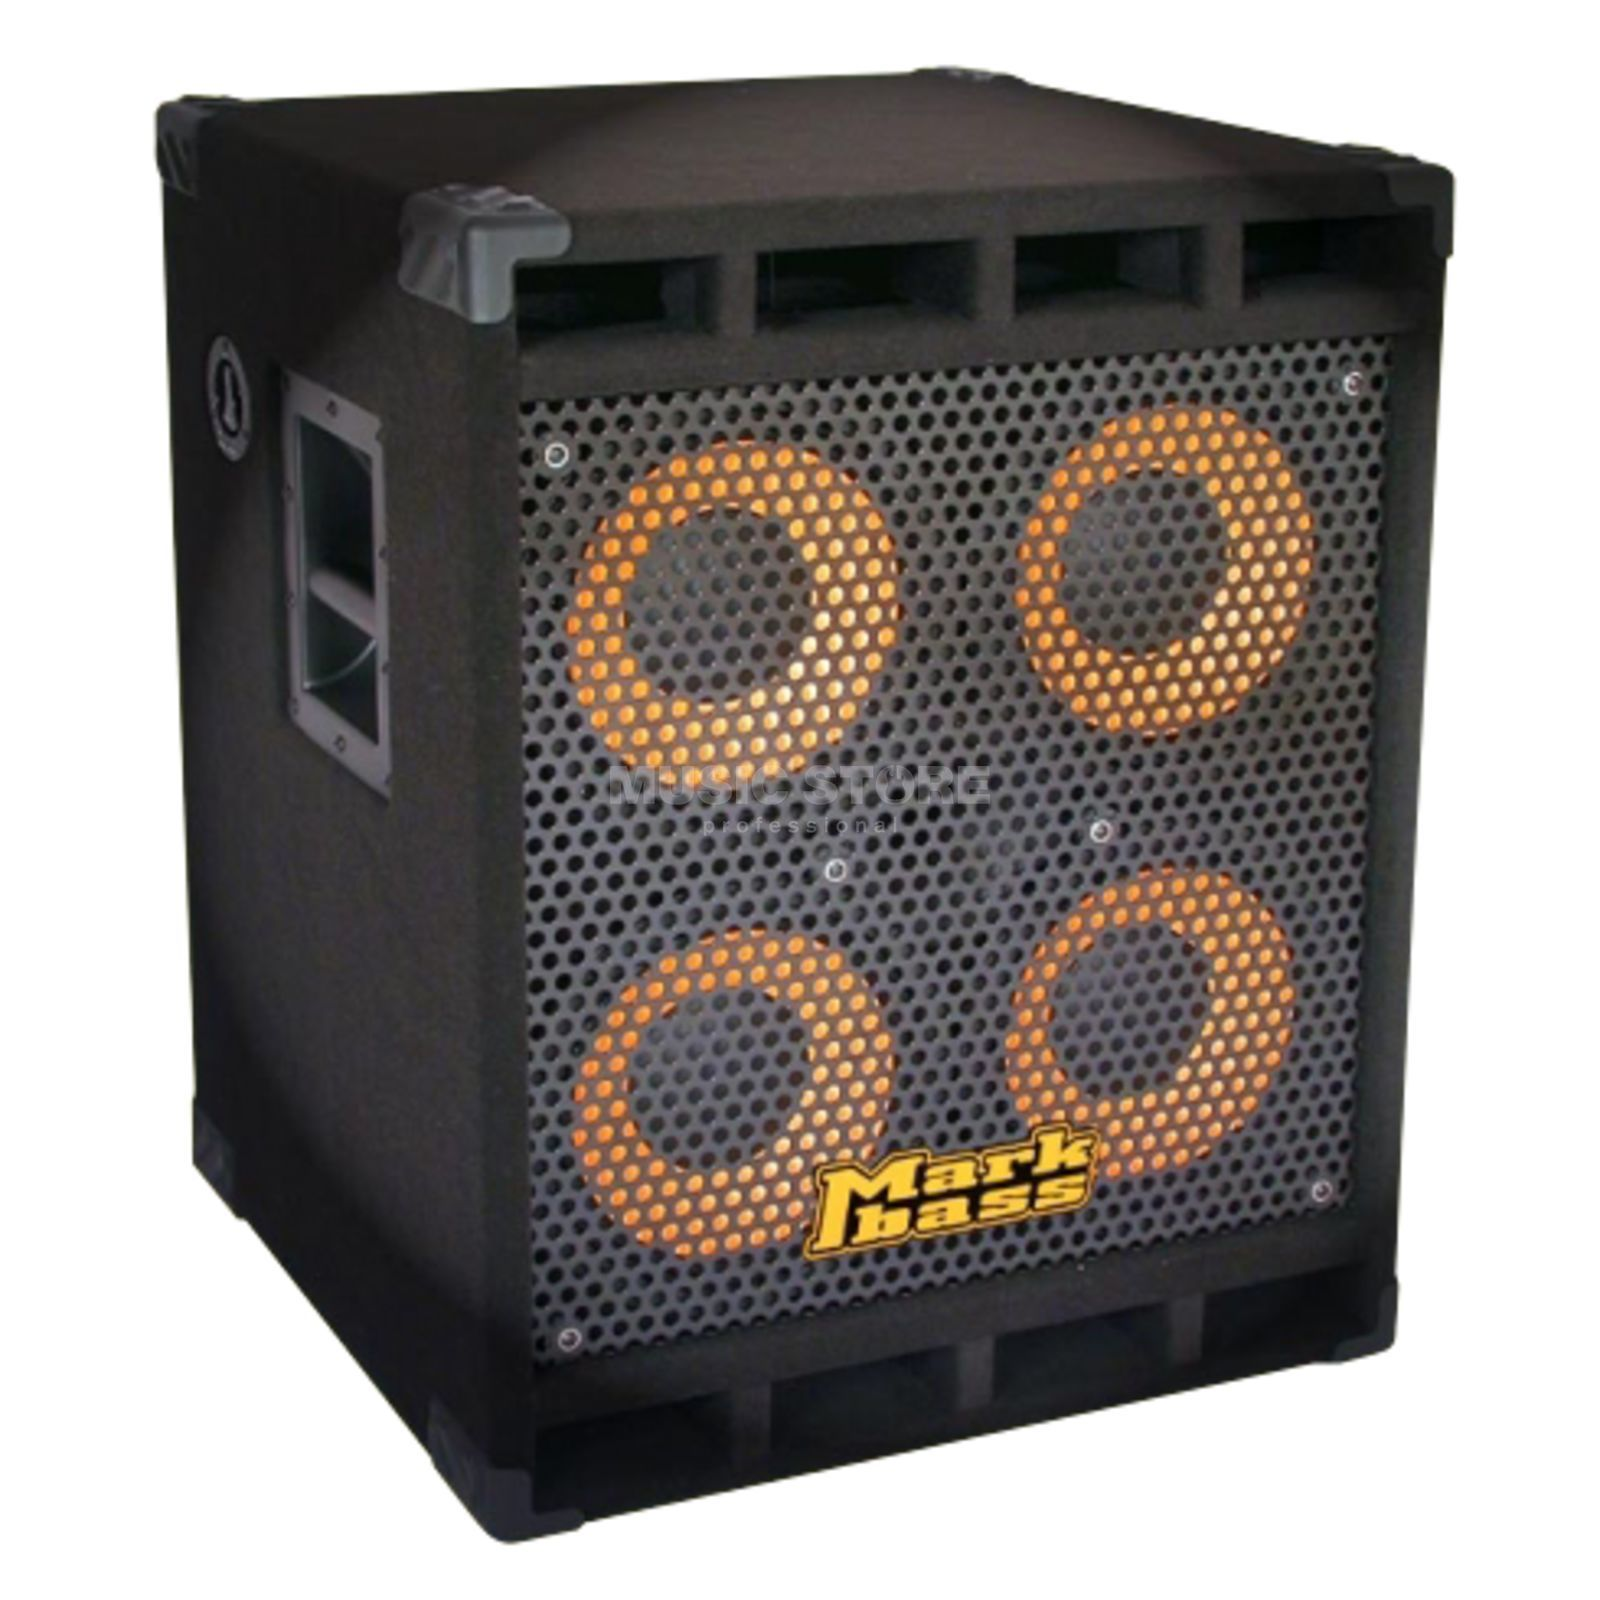 Mark Bass Standard 104 HF Cabinet 4 Ohms Product Image